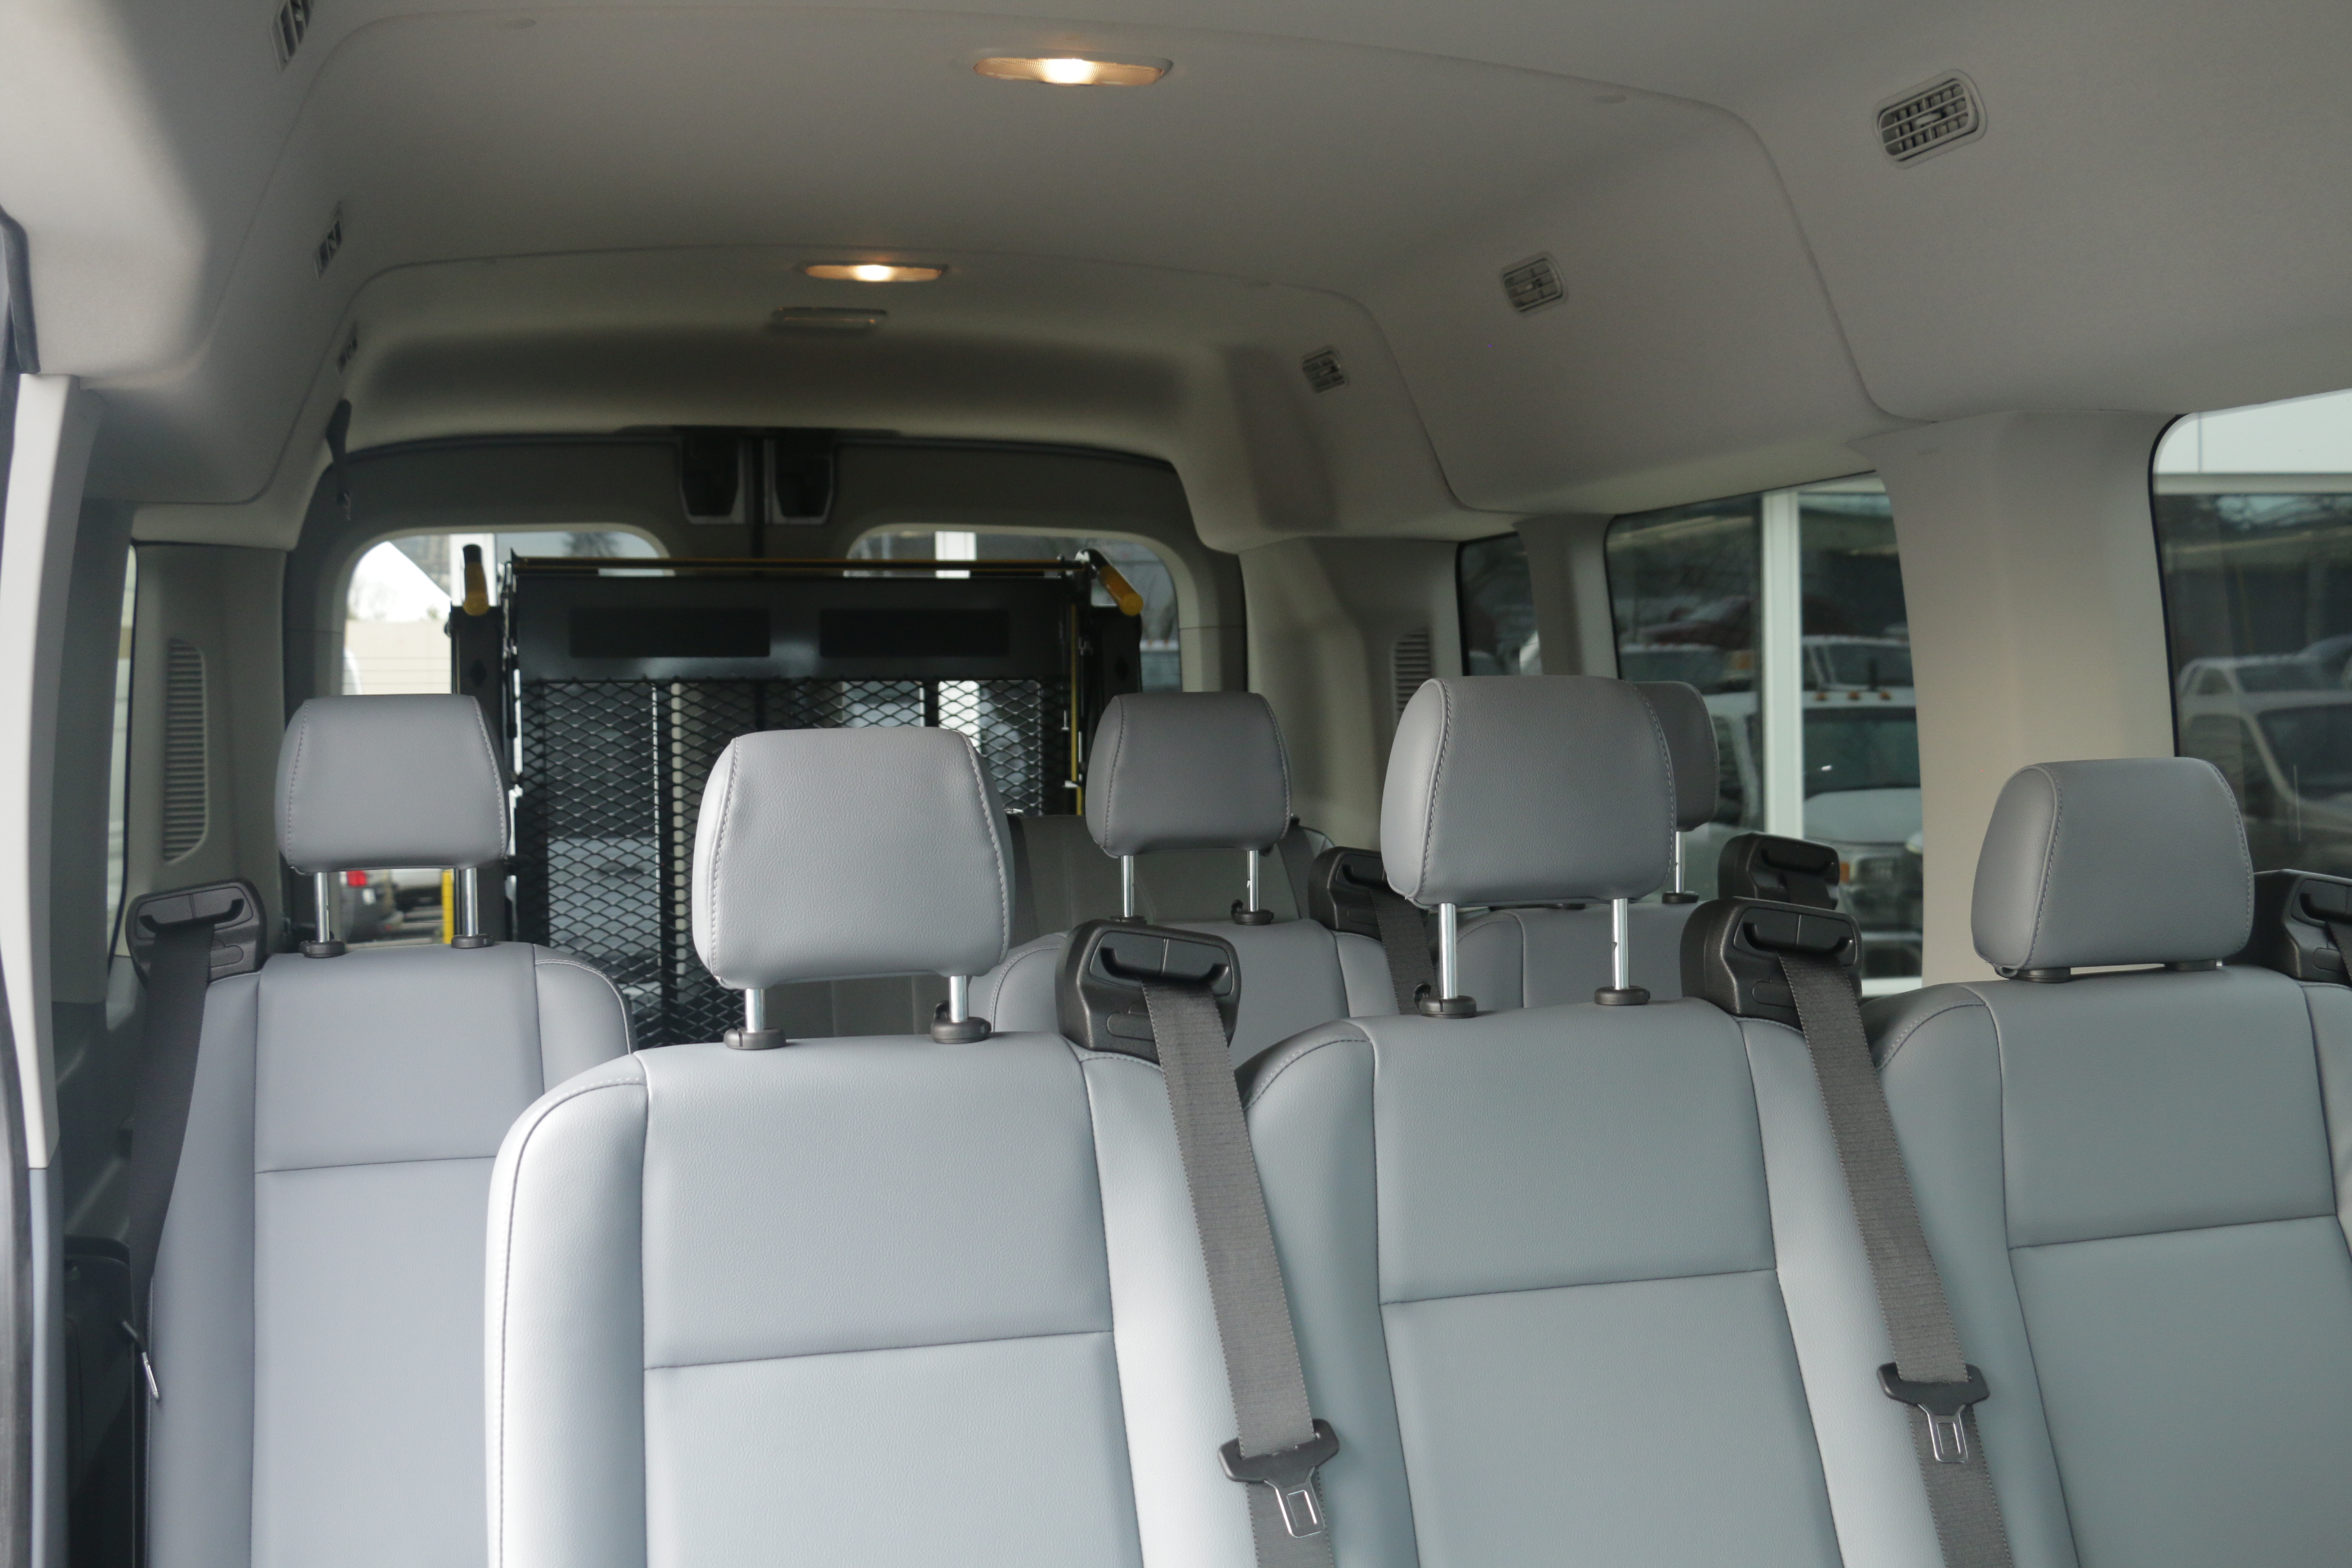 2015 Transit 350, Braun Industries Van Upfit #C54440 - photo 14